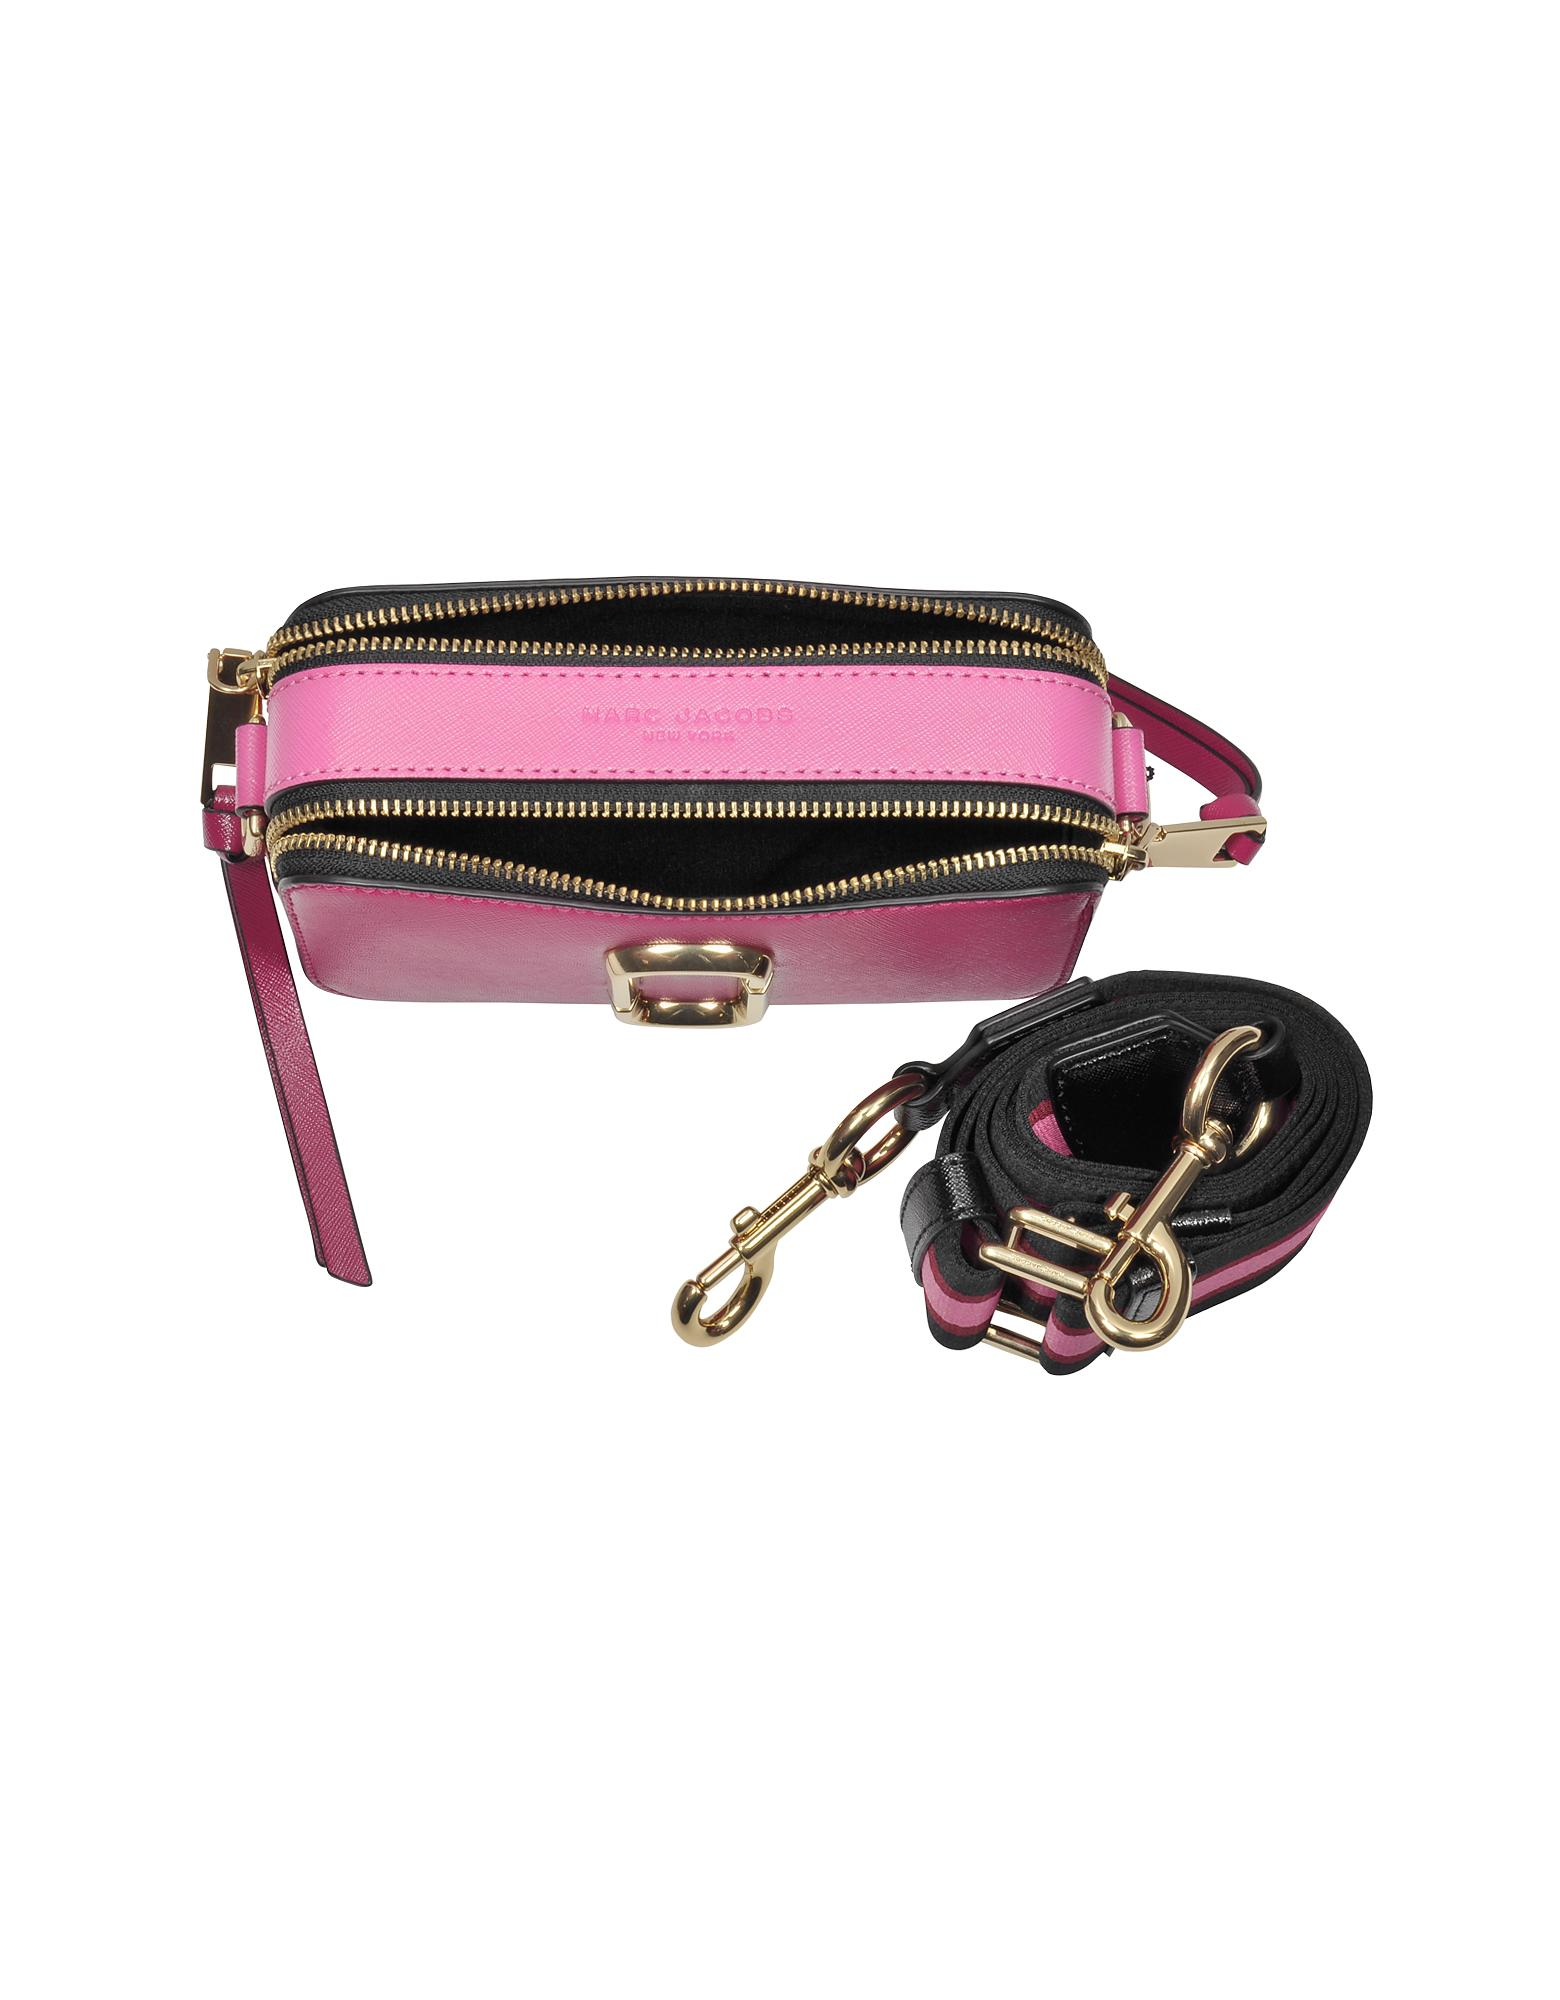 a632a8ad6020 Lyst - Marc Jacobs Hibiscus Multi Snapshot Camera Bag